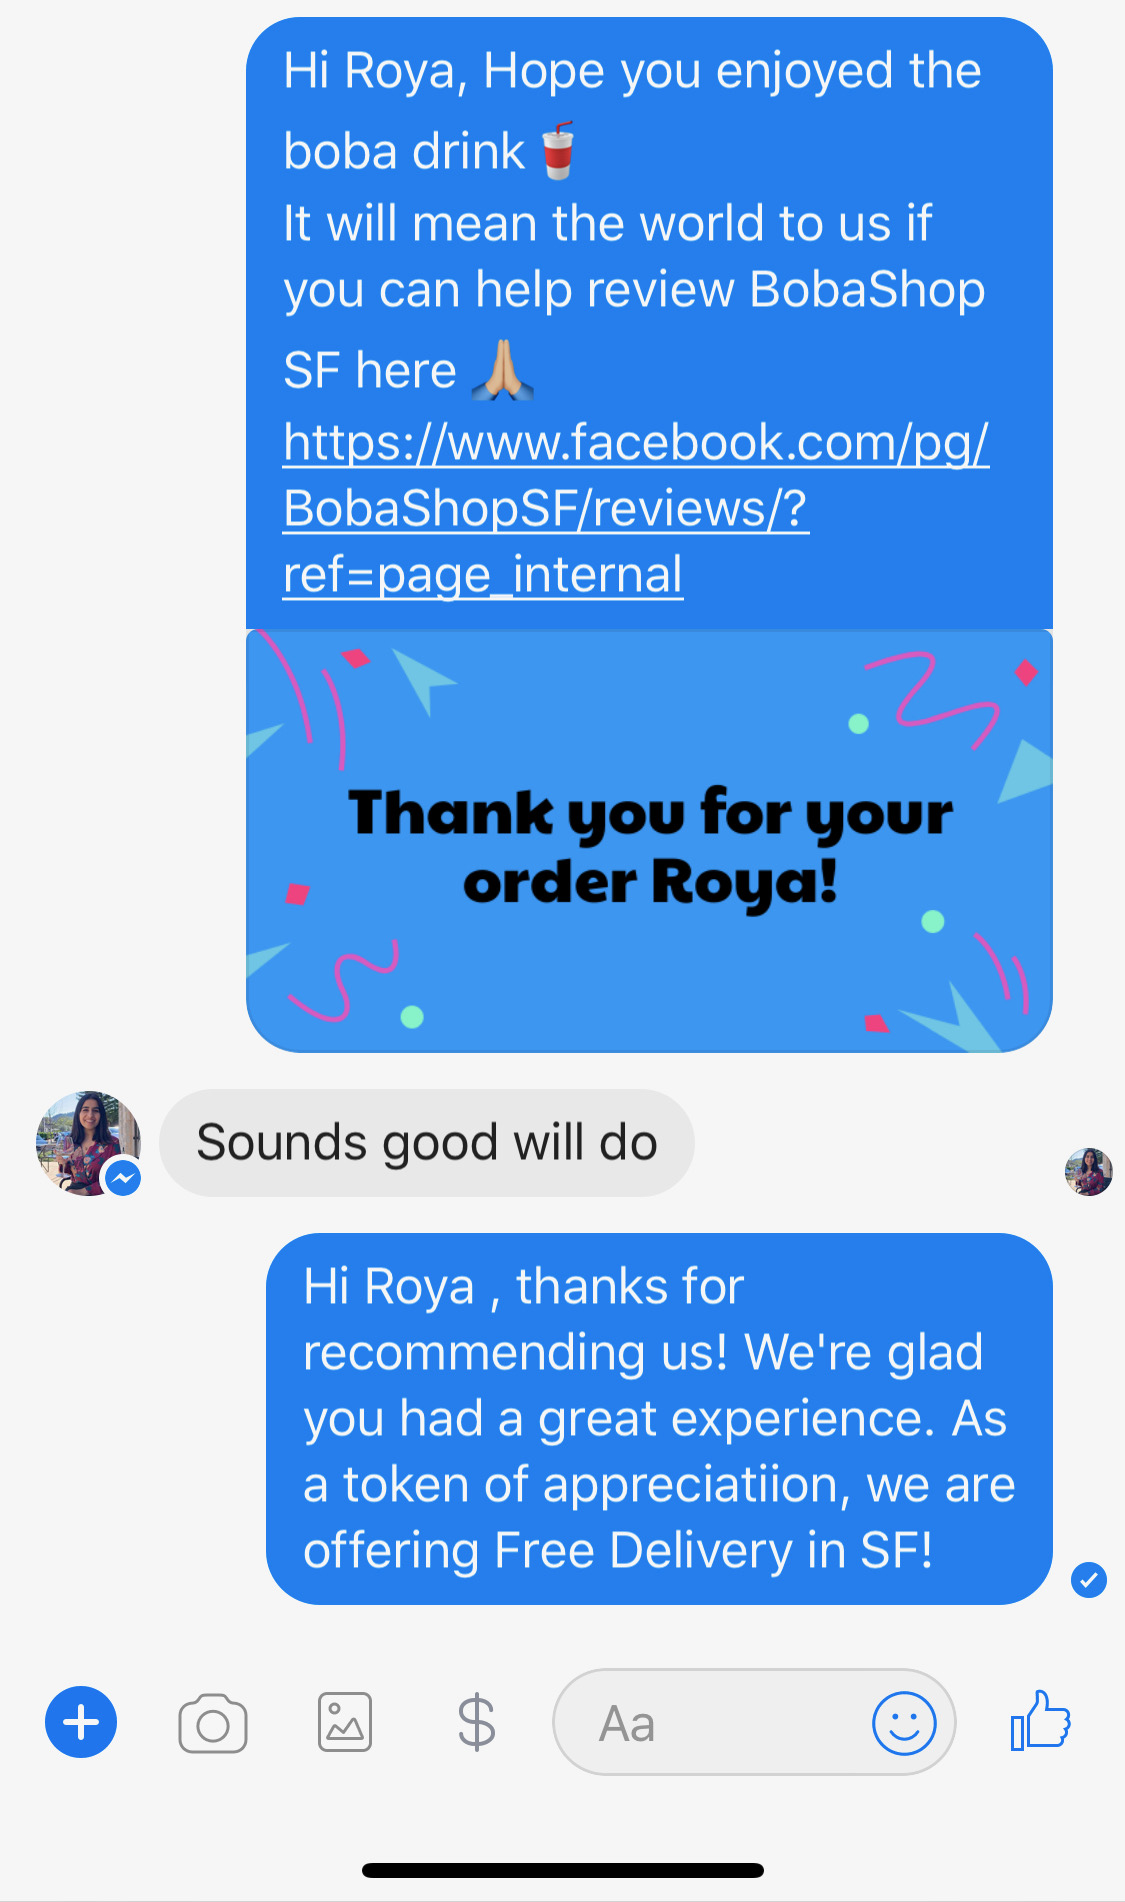 JoyUp Case Study: BobaShop SF Delivery Review